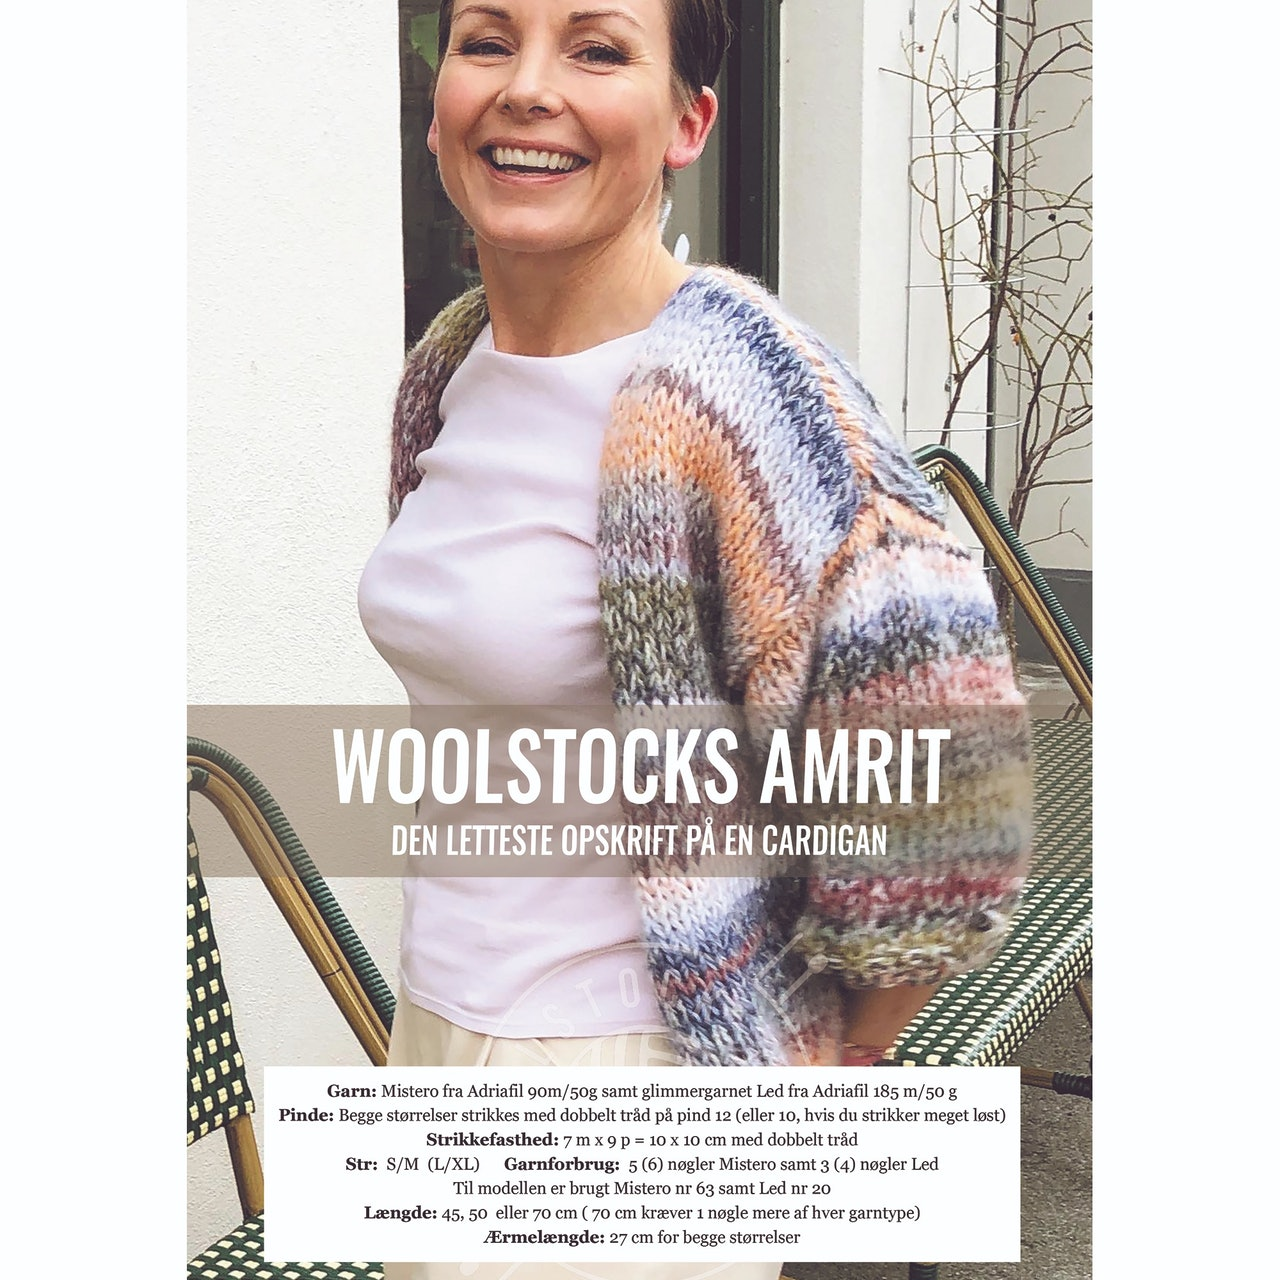 Woolstocks Amrit